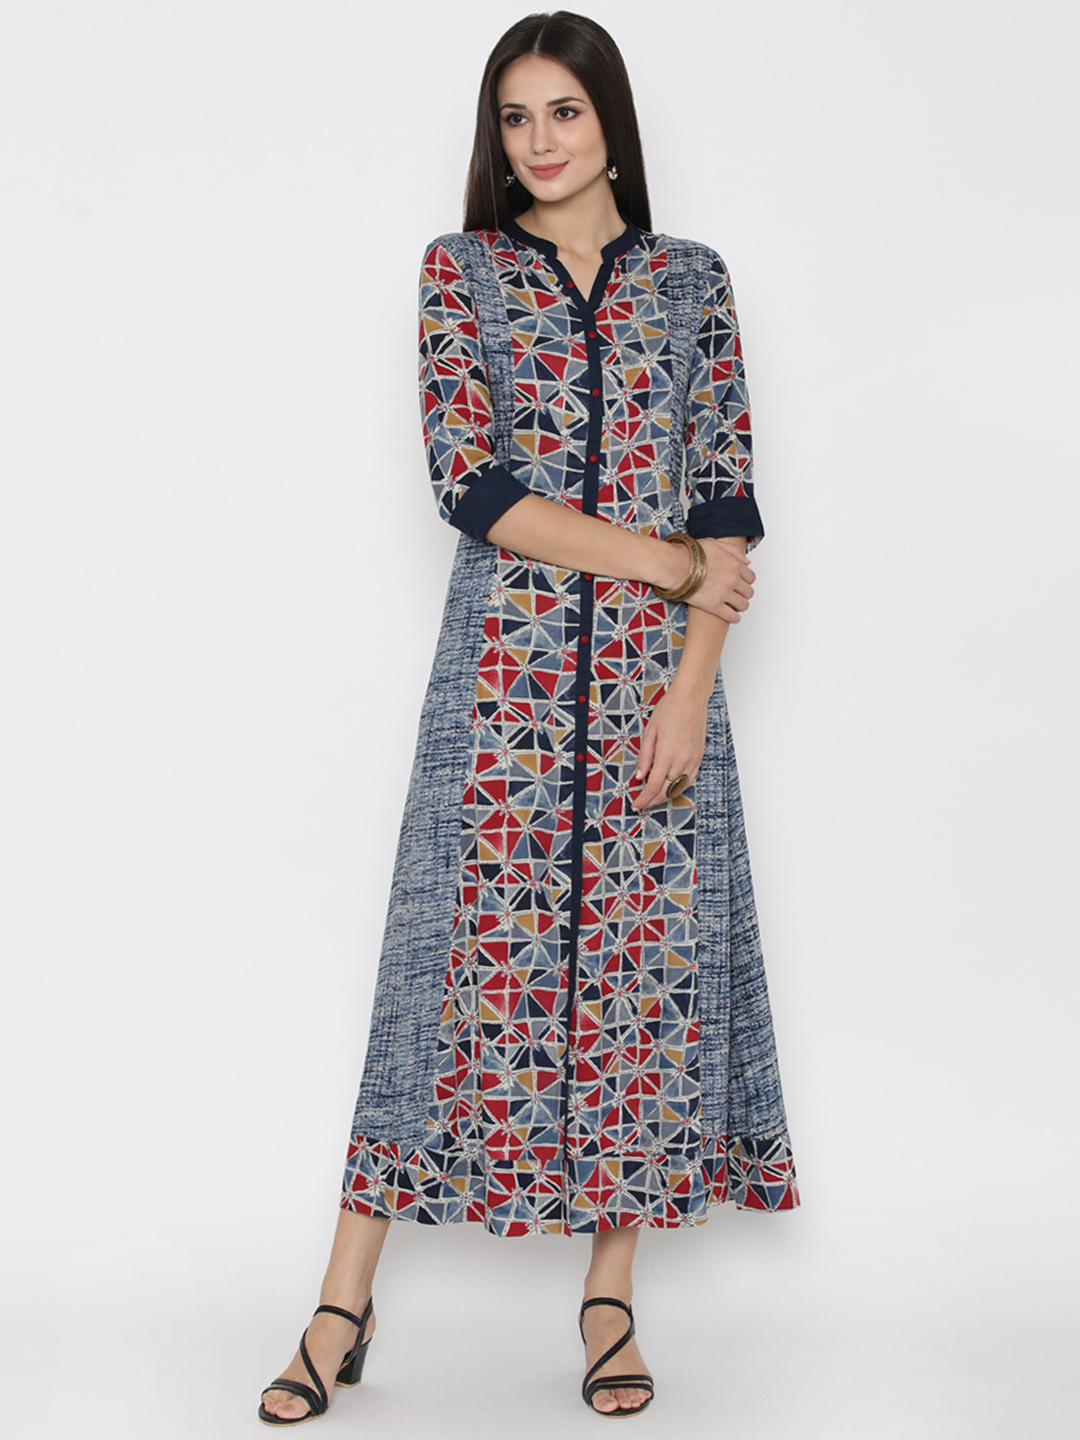 Shree Women Blue Rayon Printed Maxi Dress Price in India